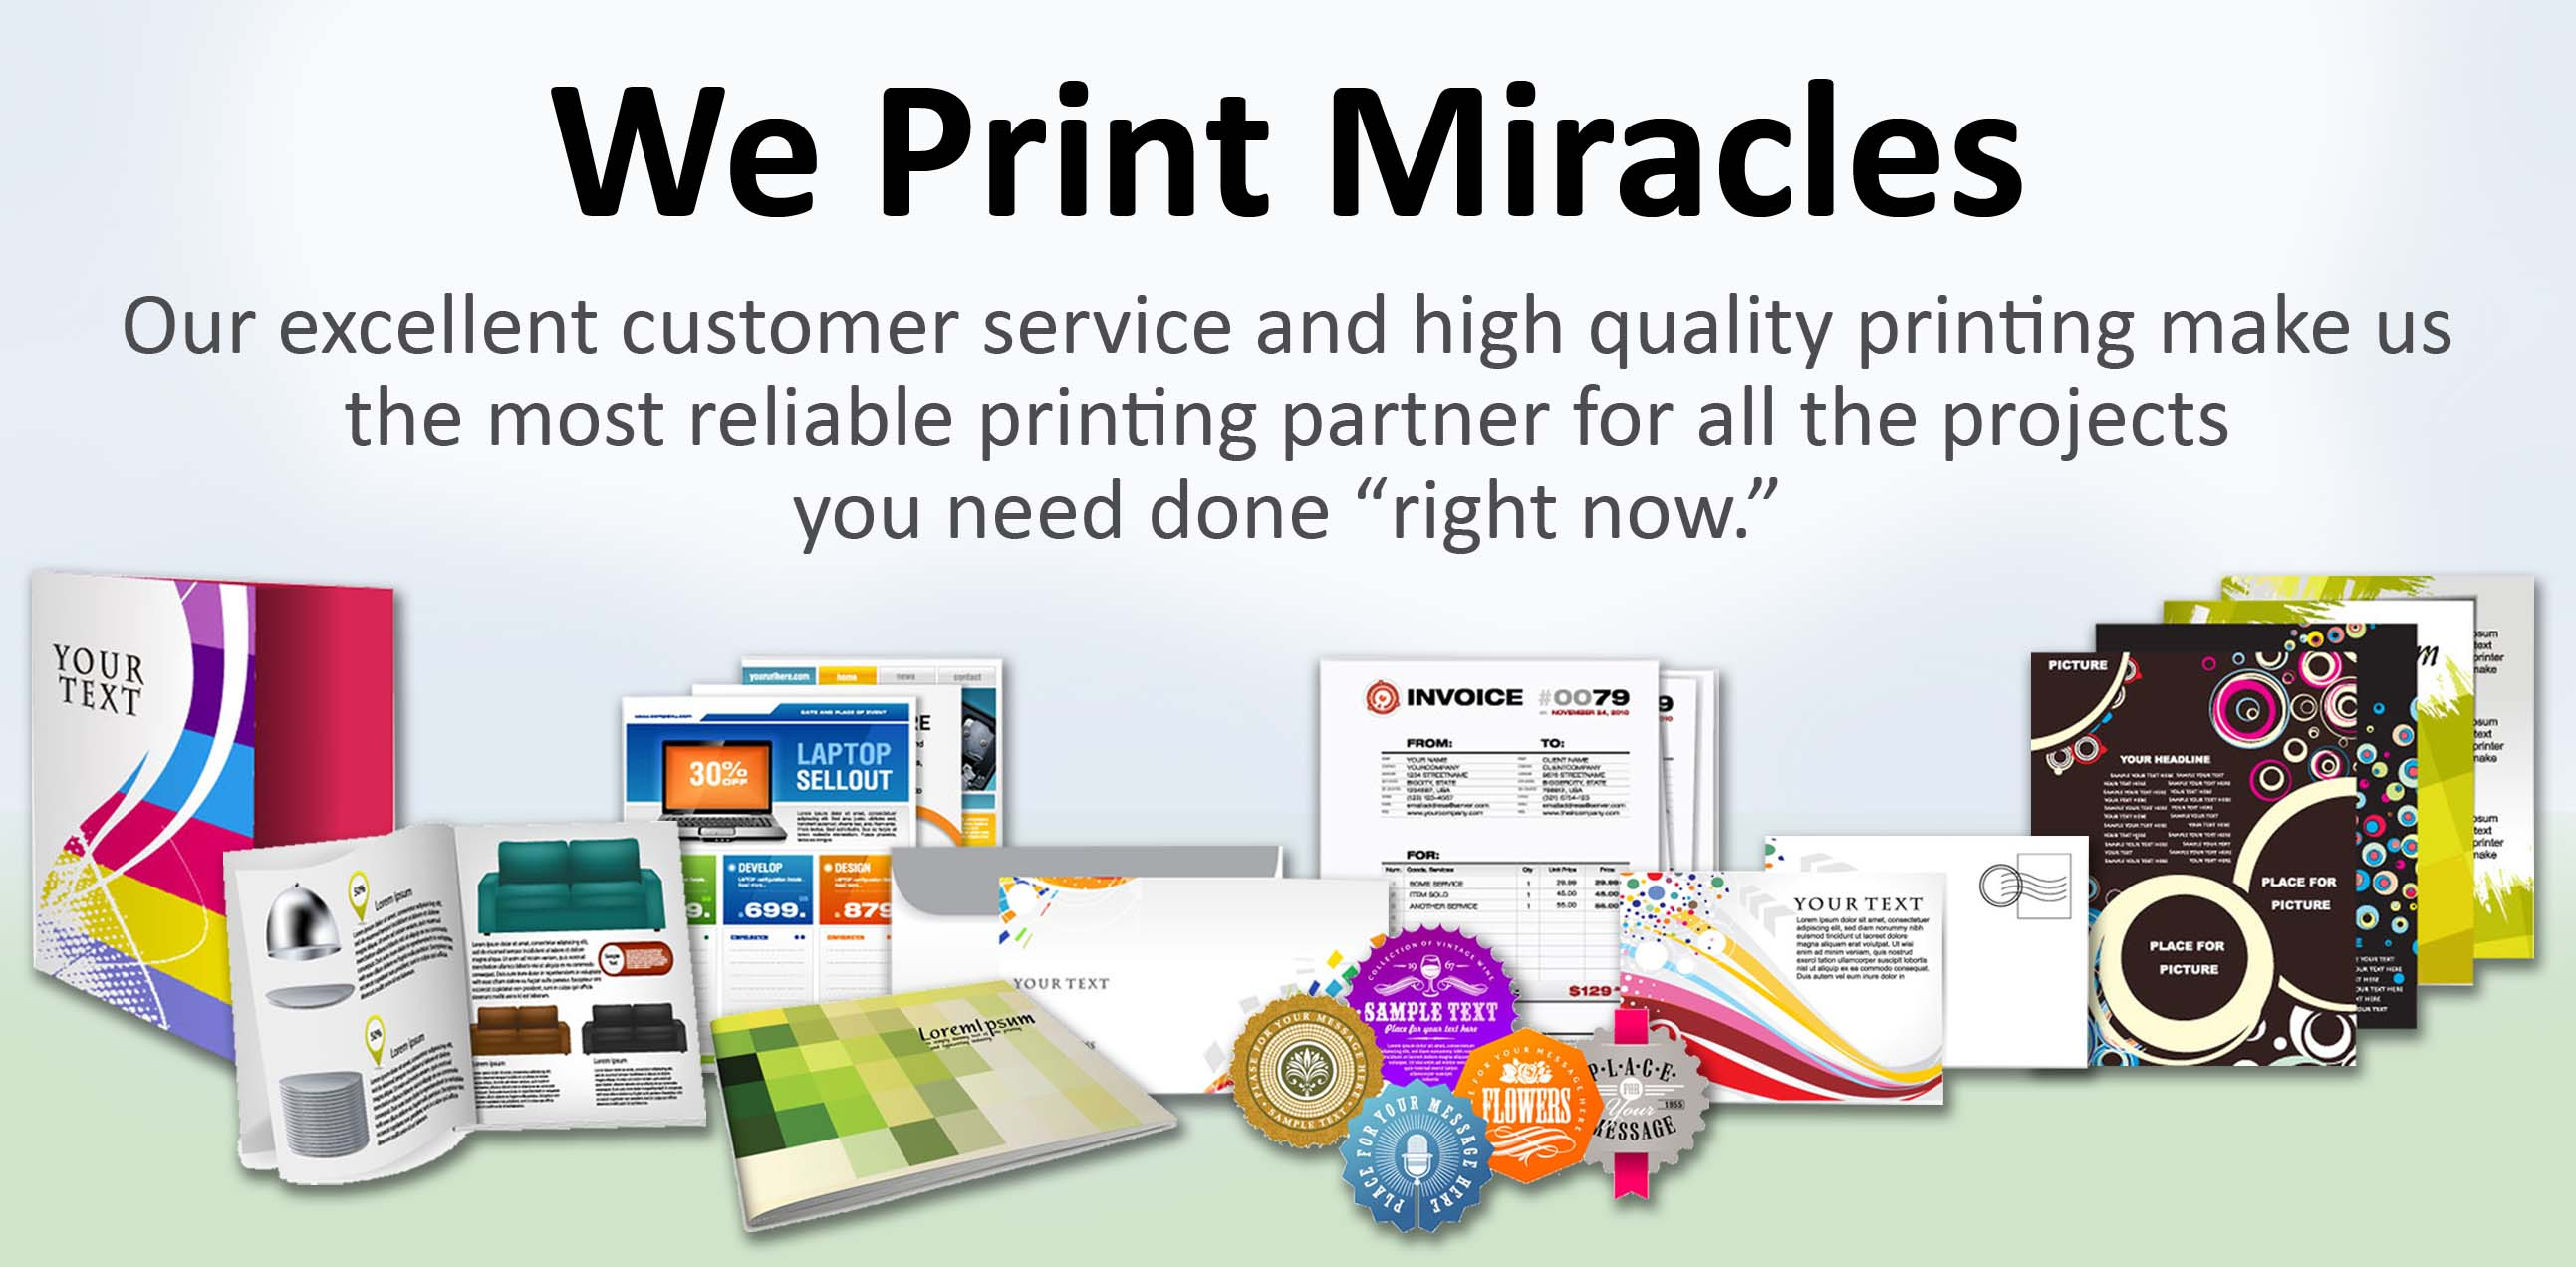 los angeles printing company same day printing slb